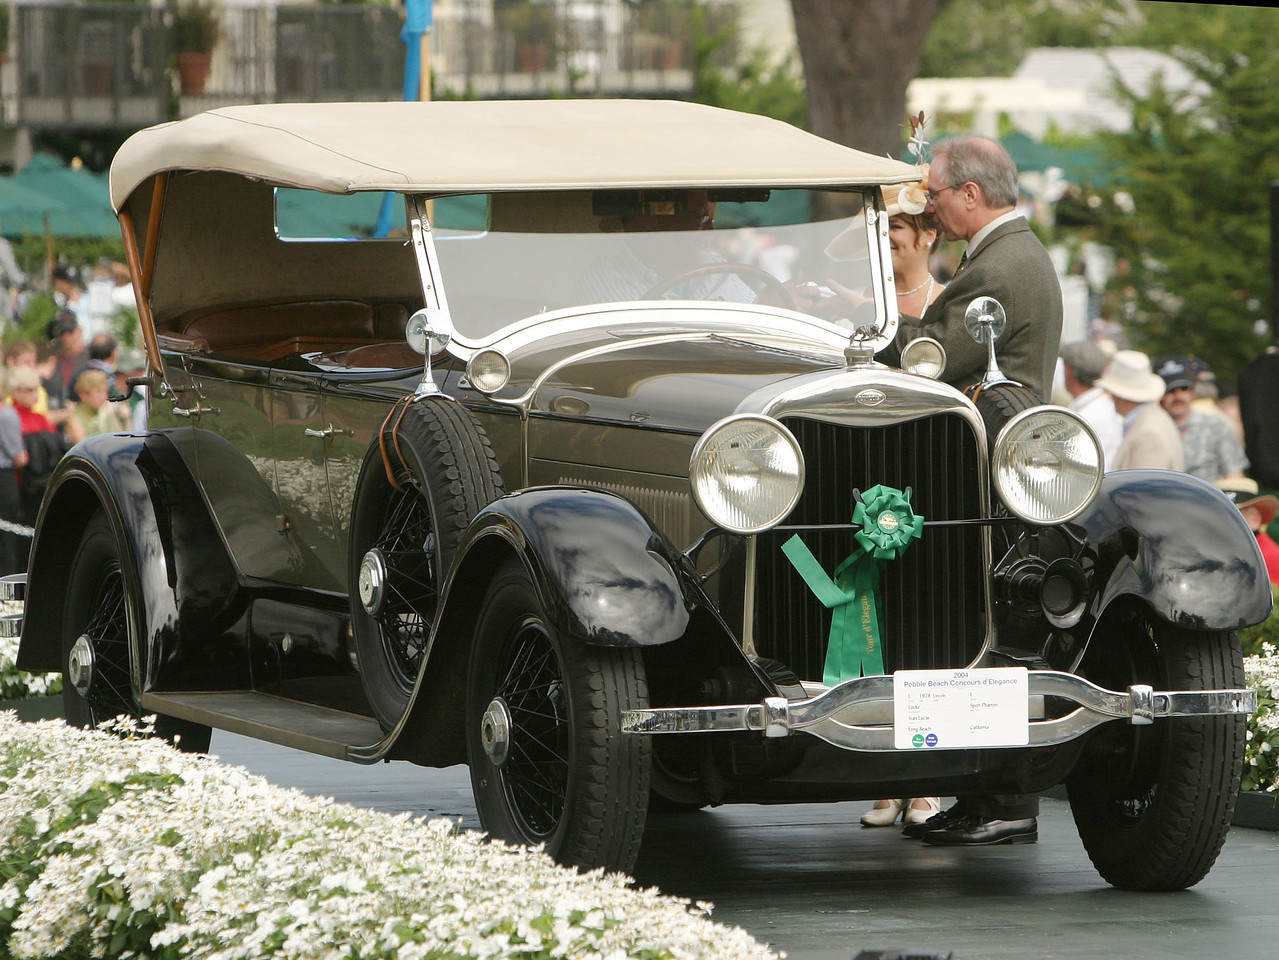 1928 Lincoln L Locke Sport Phaeton.  Lincoln Trophy.